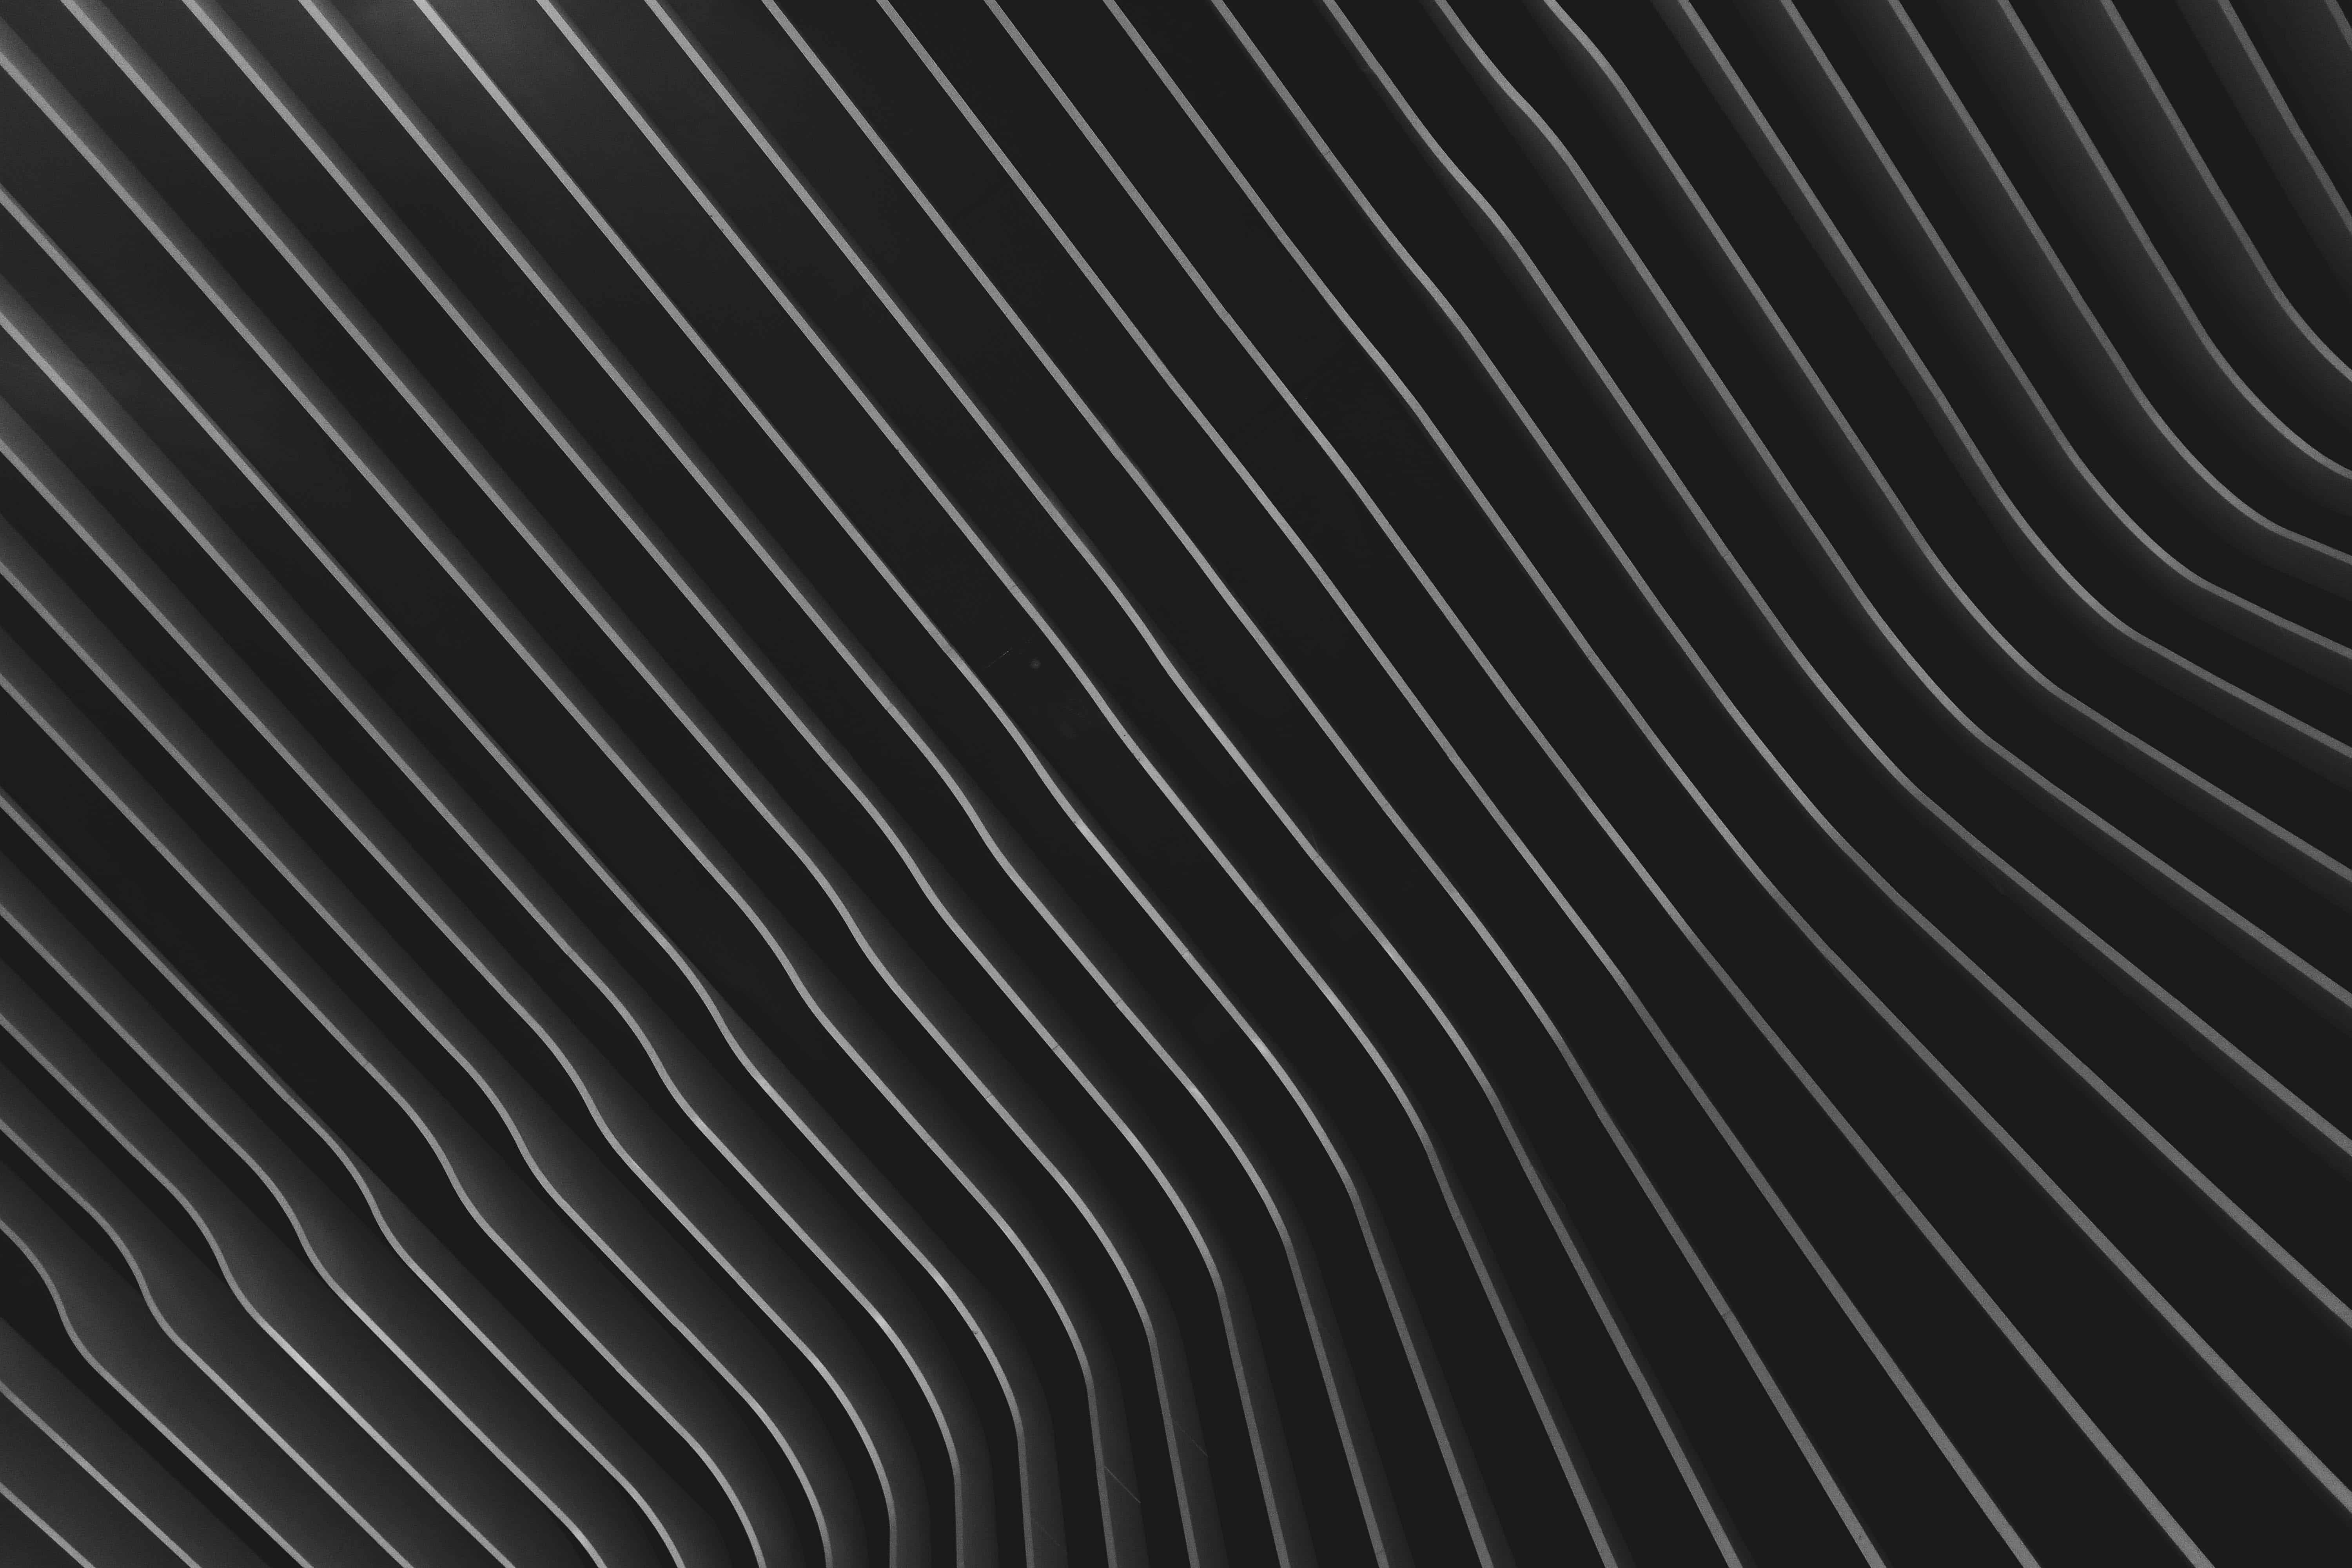 abstract black and white image